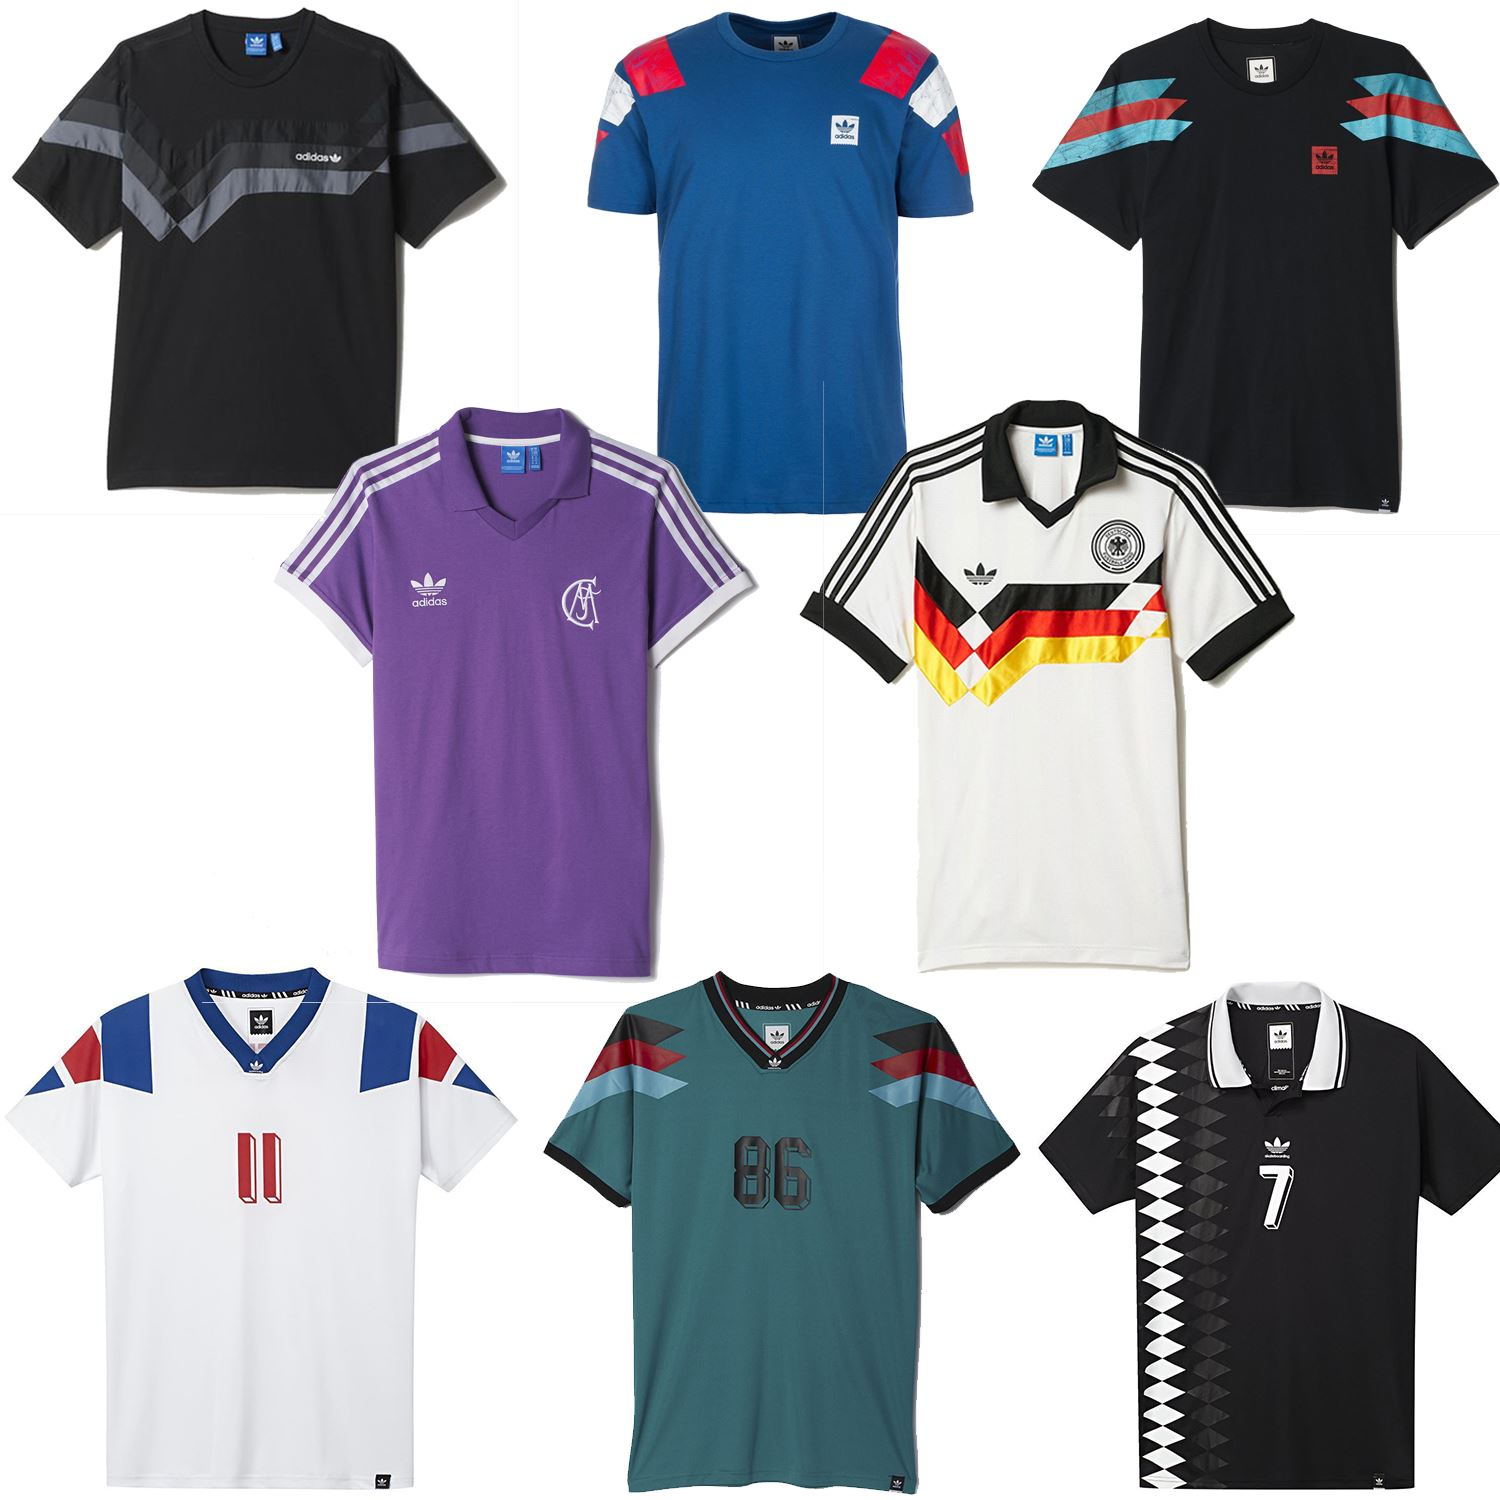 Details about adidas ORIGINALS RETRO FOOTBALL JERSEYS FRANCE GERMANY SPAIN REAL MADRID MEN'S